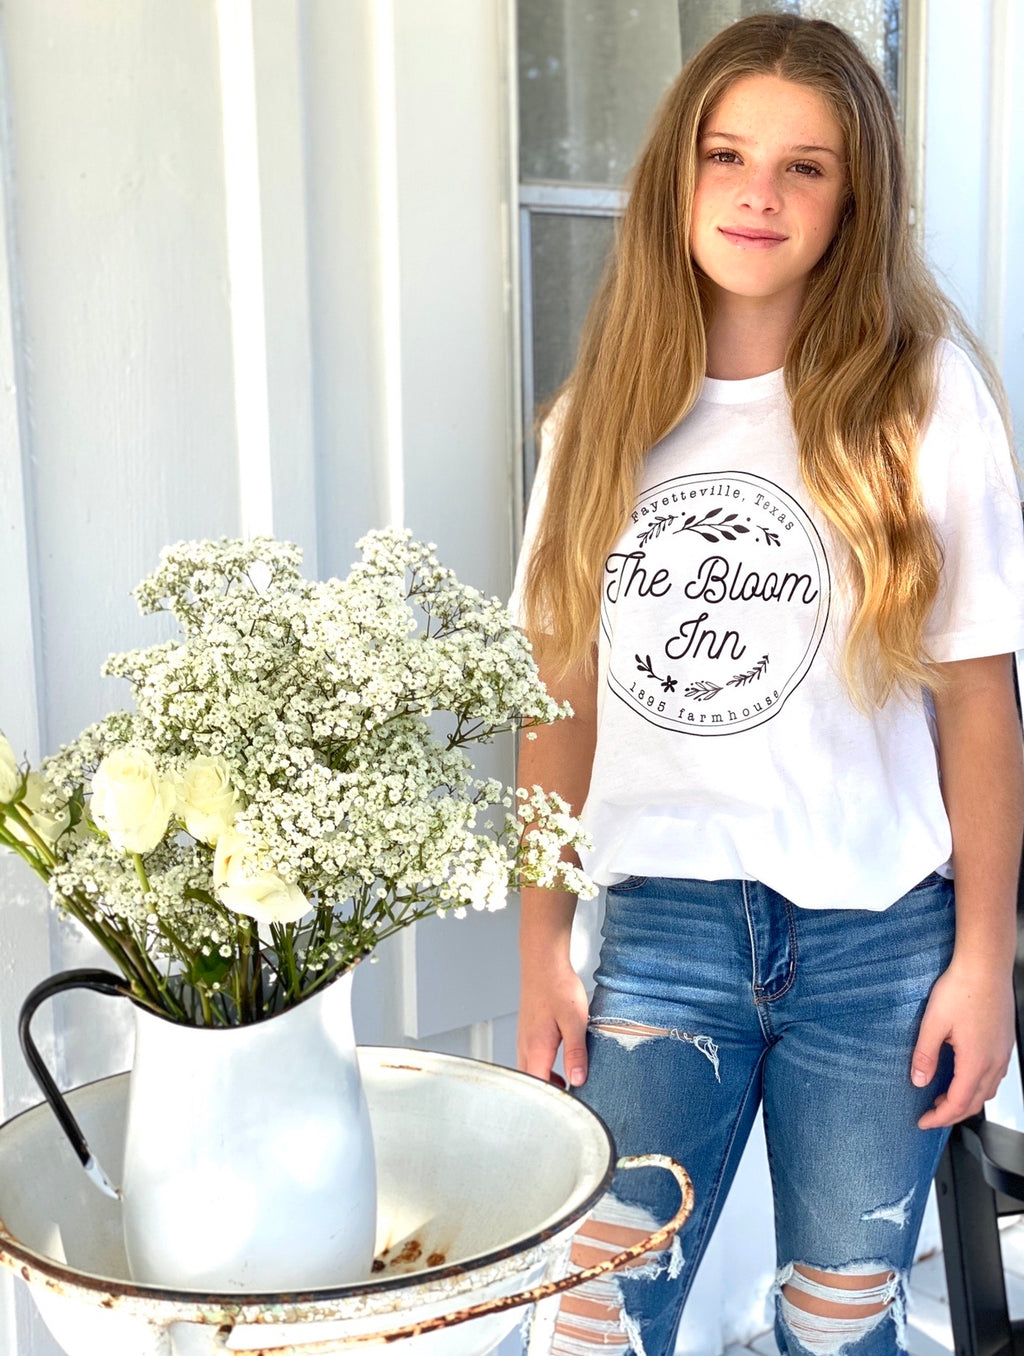 The Bloom Inn T-shirt